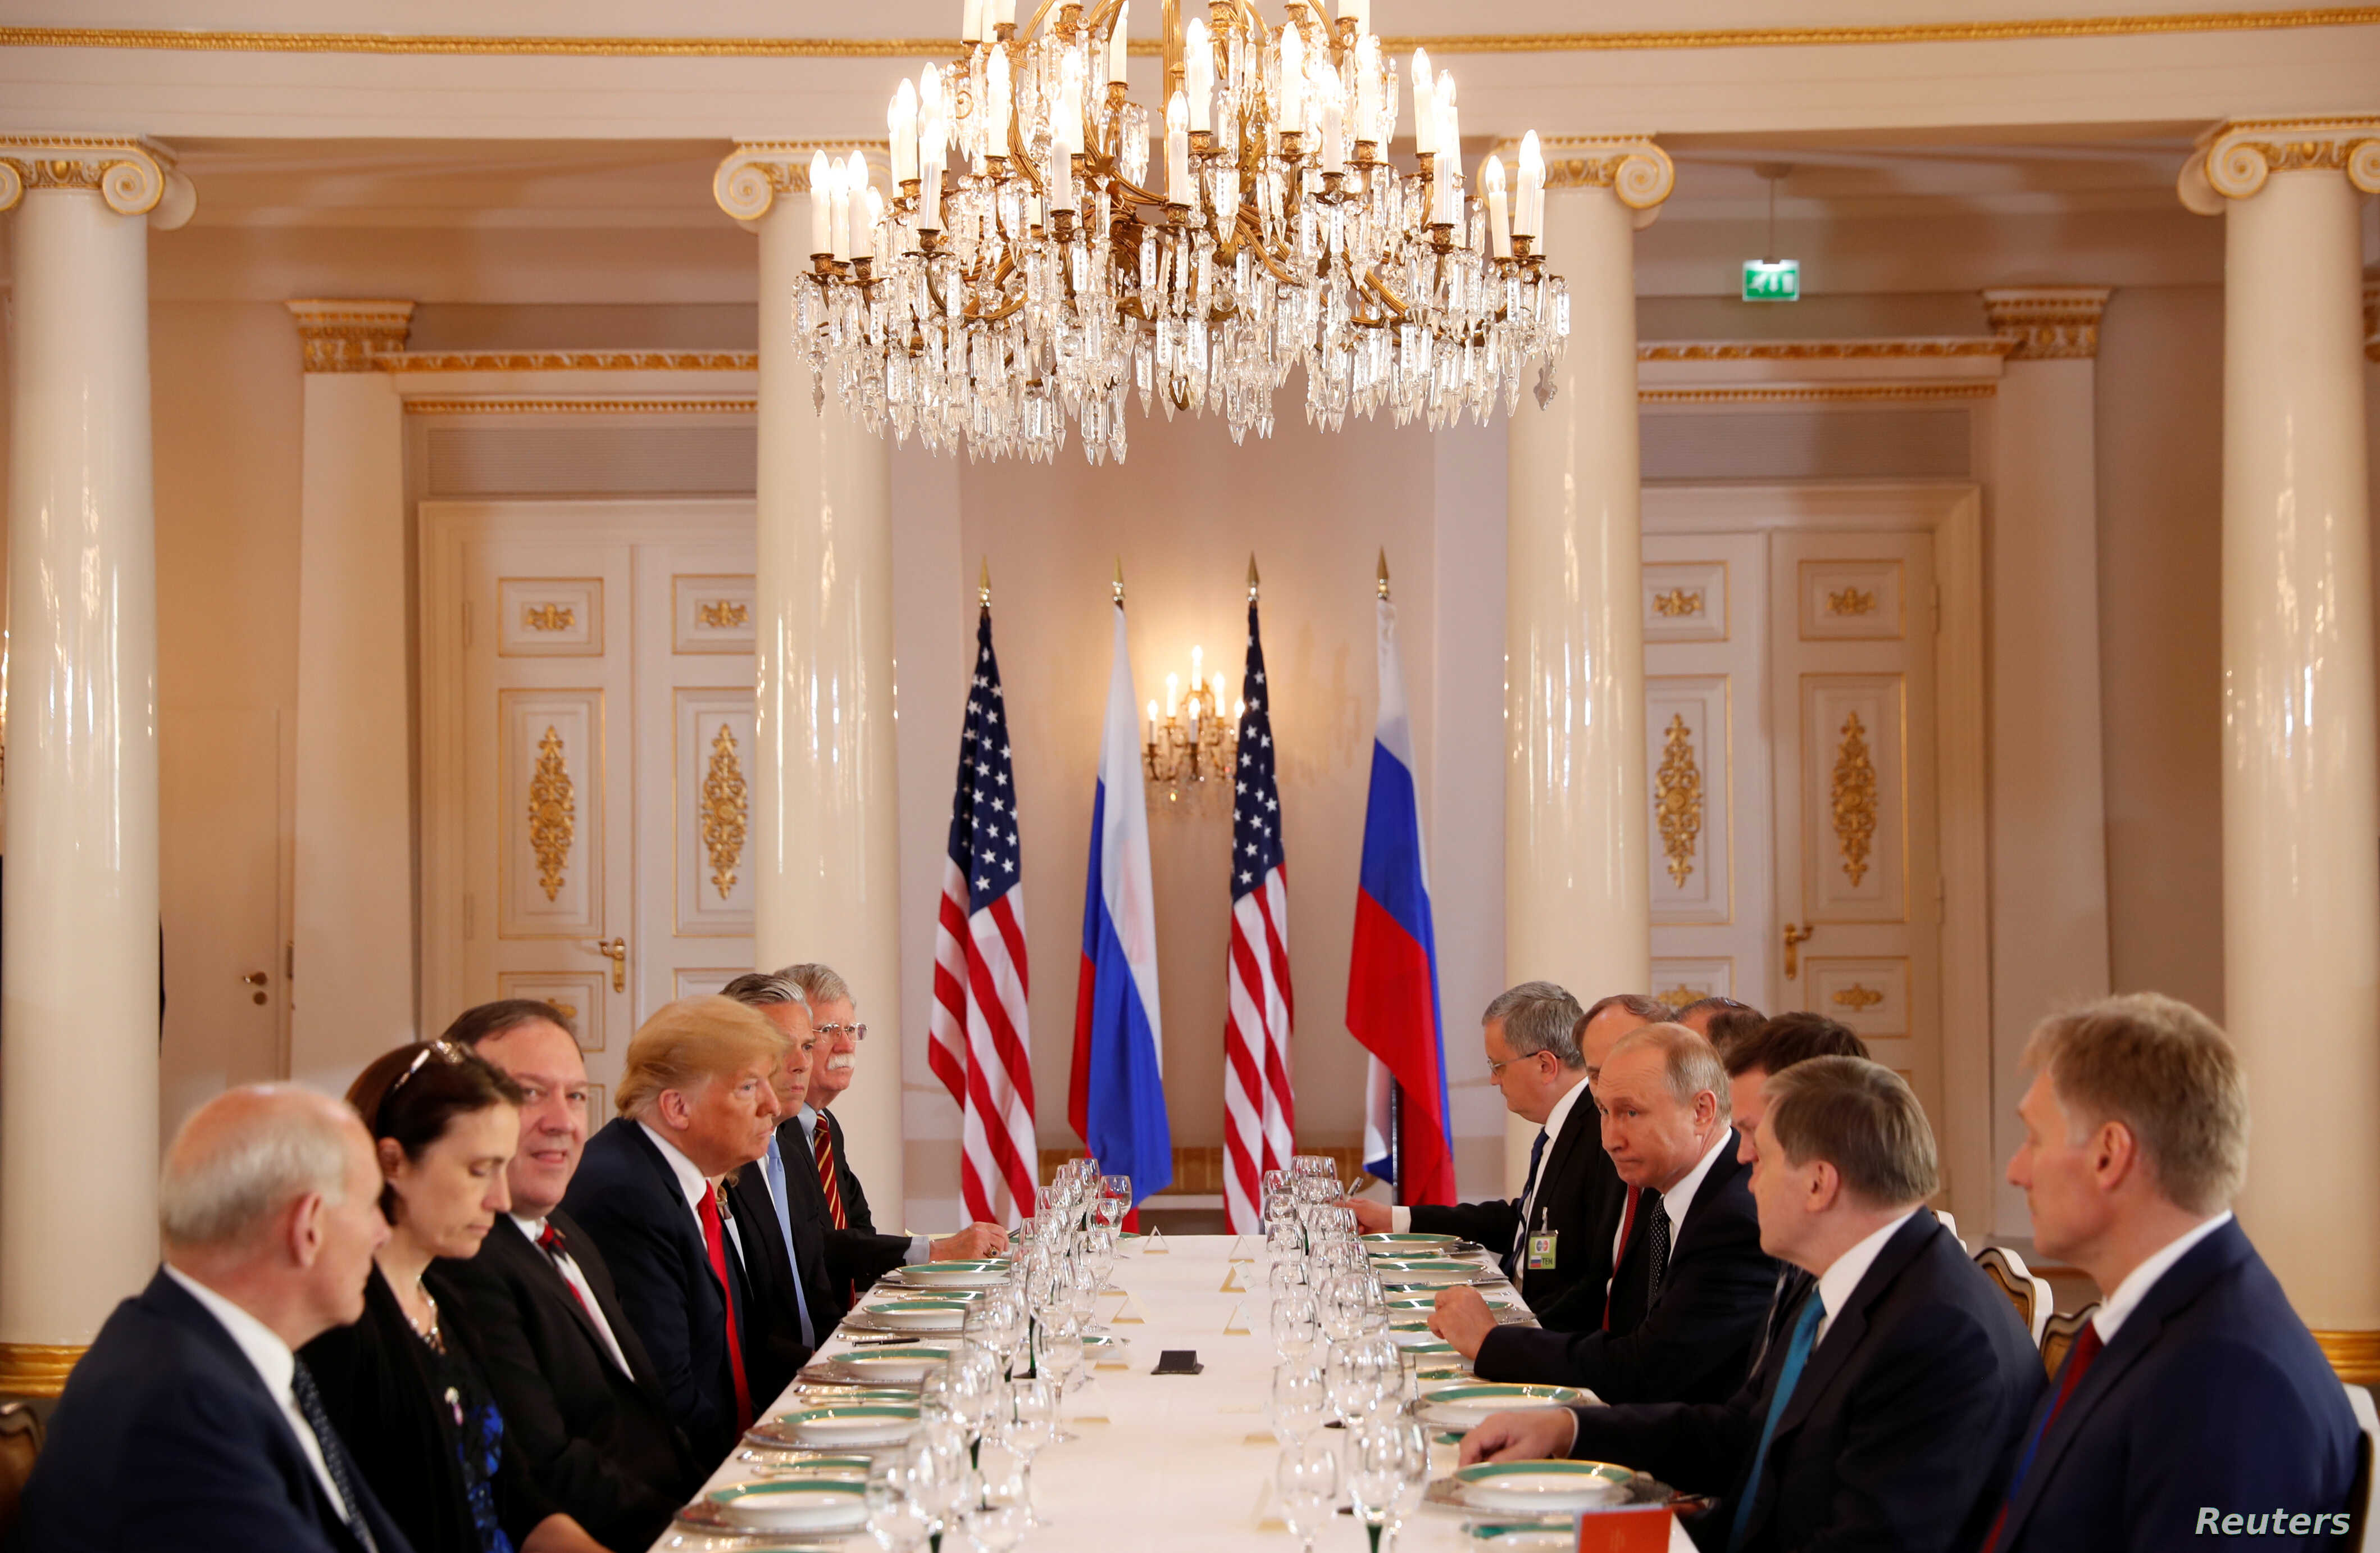 U.S. President Donald Trump participates in an expanded bilateral meeting with Russia's President Vladimir Putin in Helsinki, Finland, July 16, 2018.